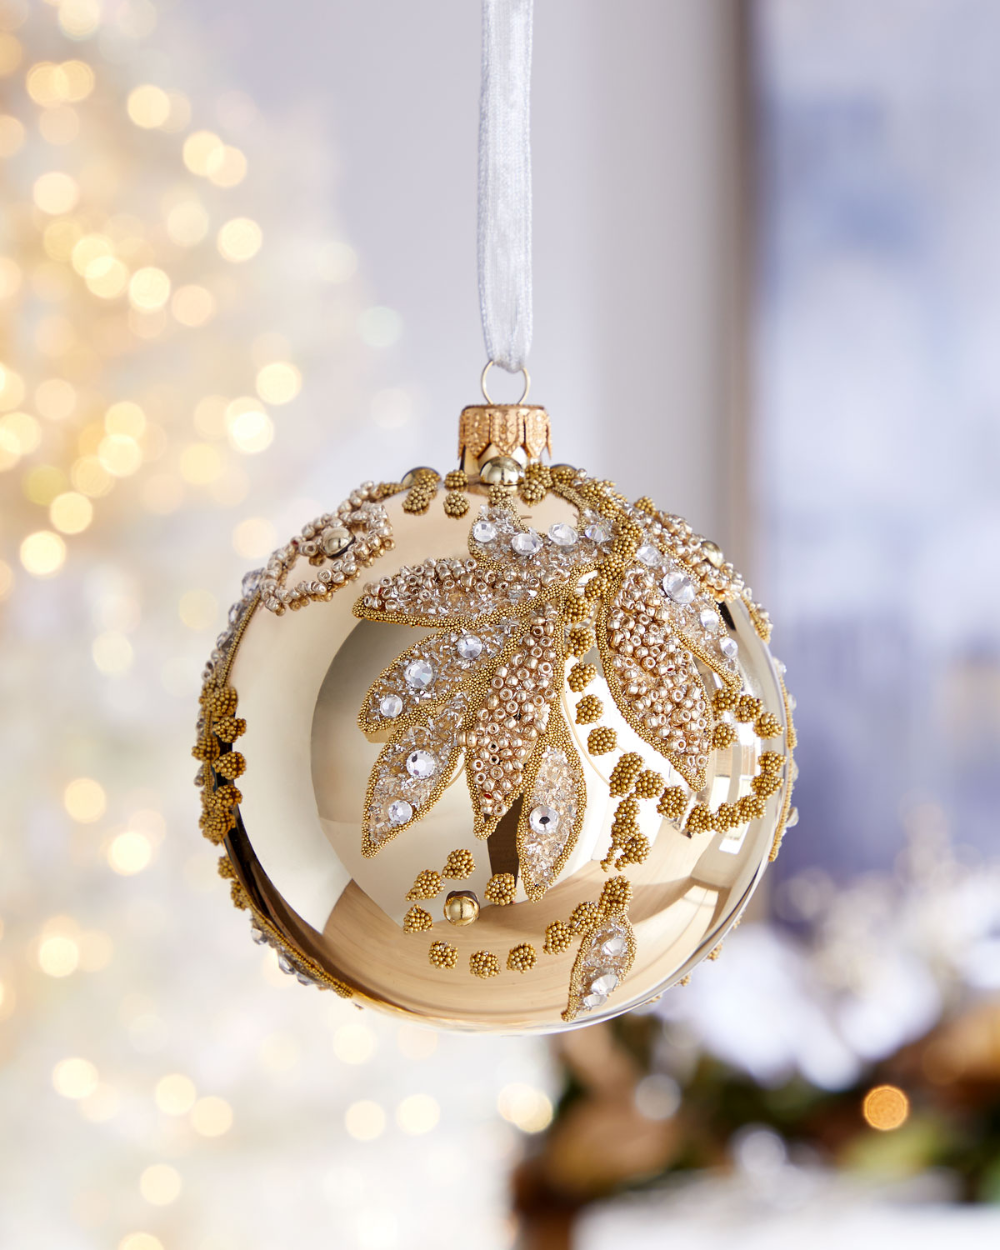 Champagne Ball With Beaded Leaves Christmas Ornament Christmas Door Decorations Christmas Ornaments Glass Christmas Tree Ornaments